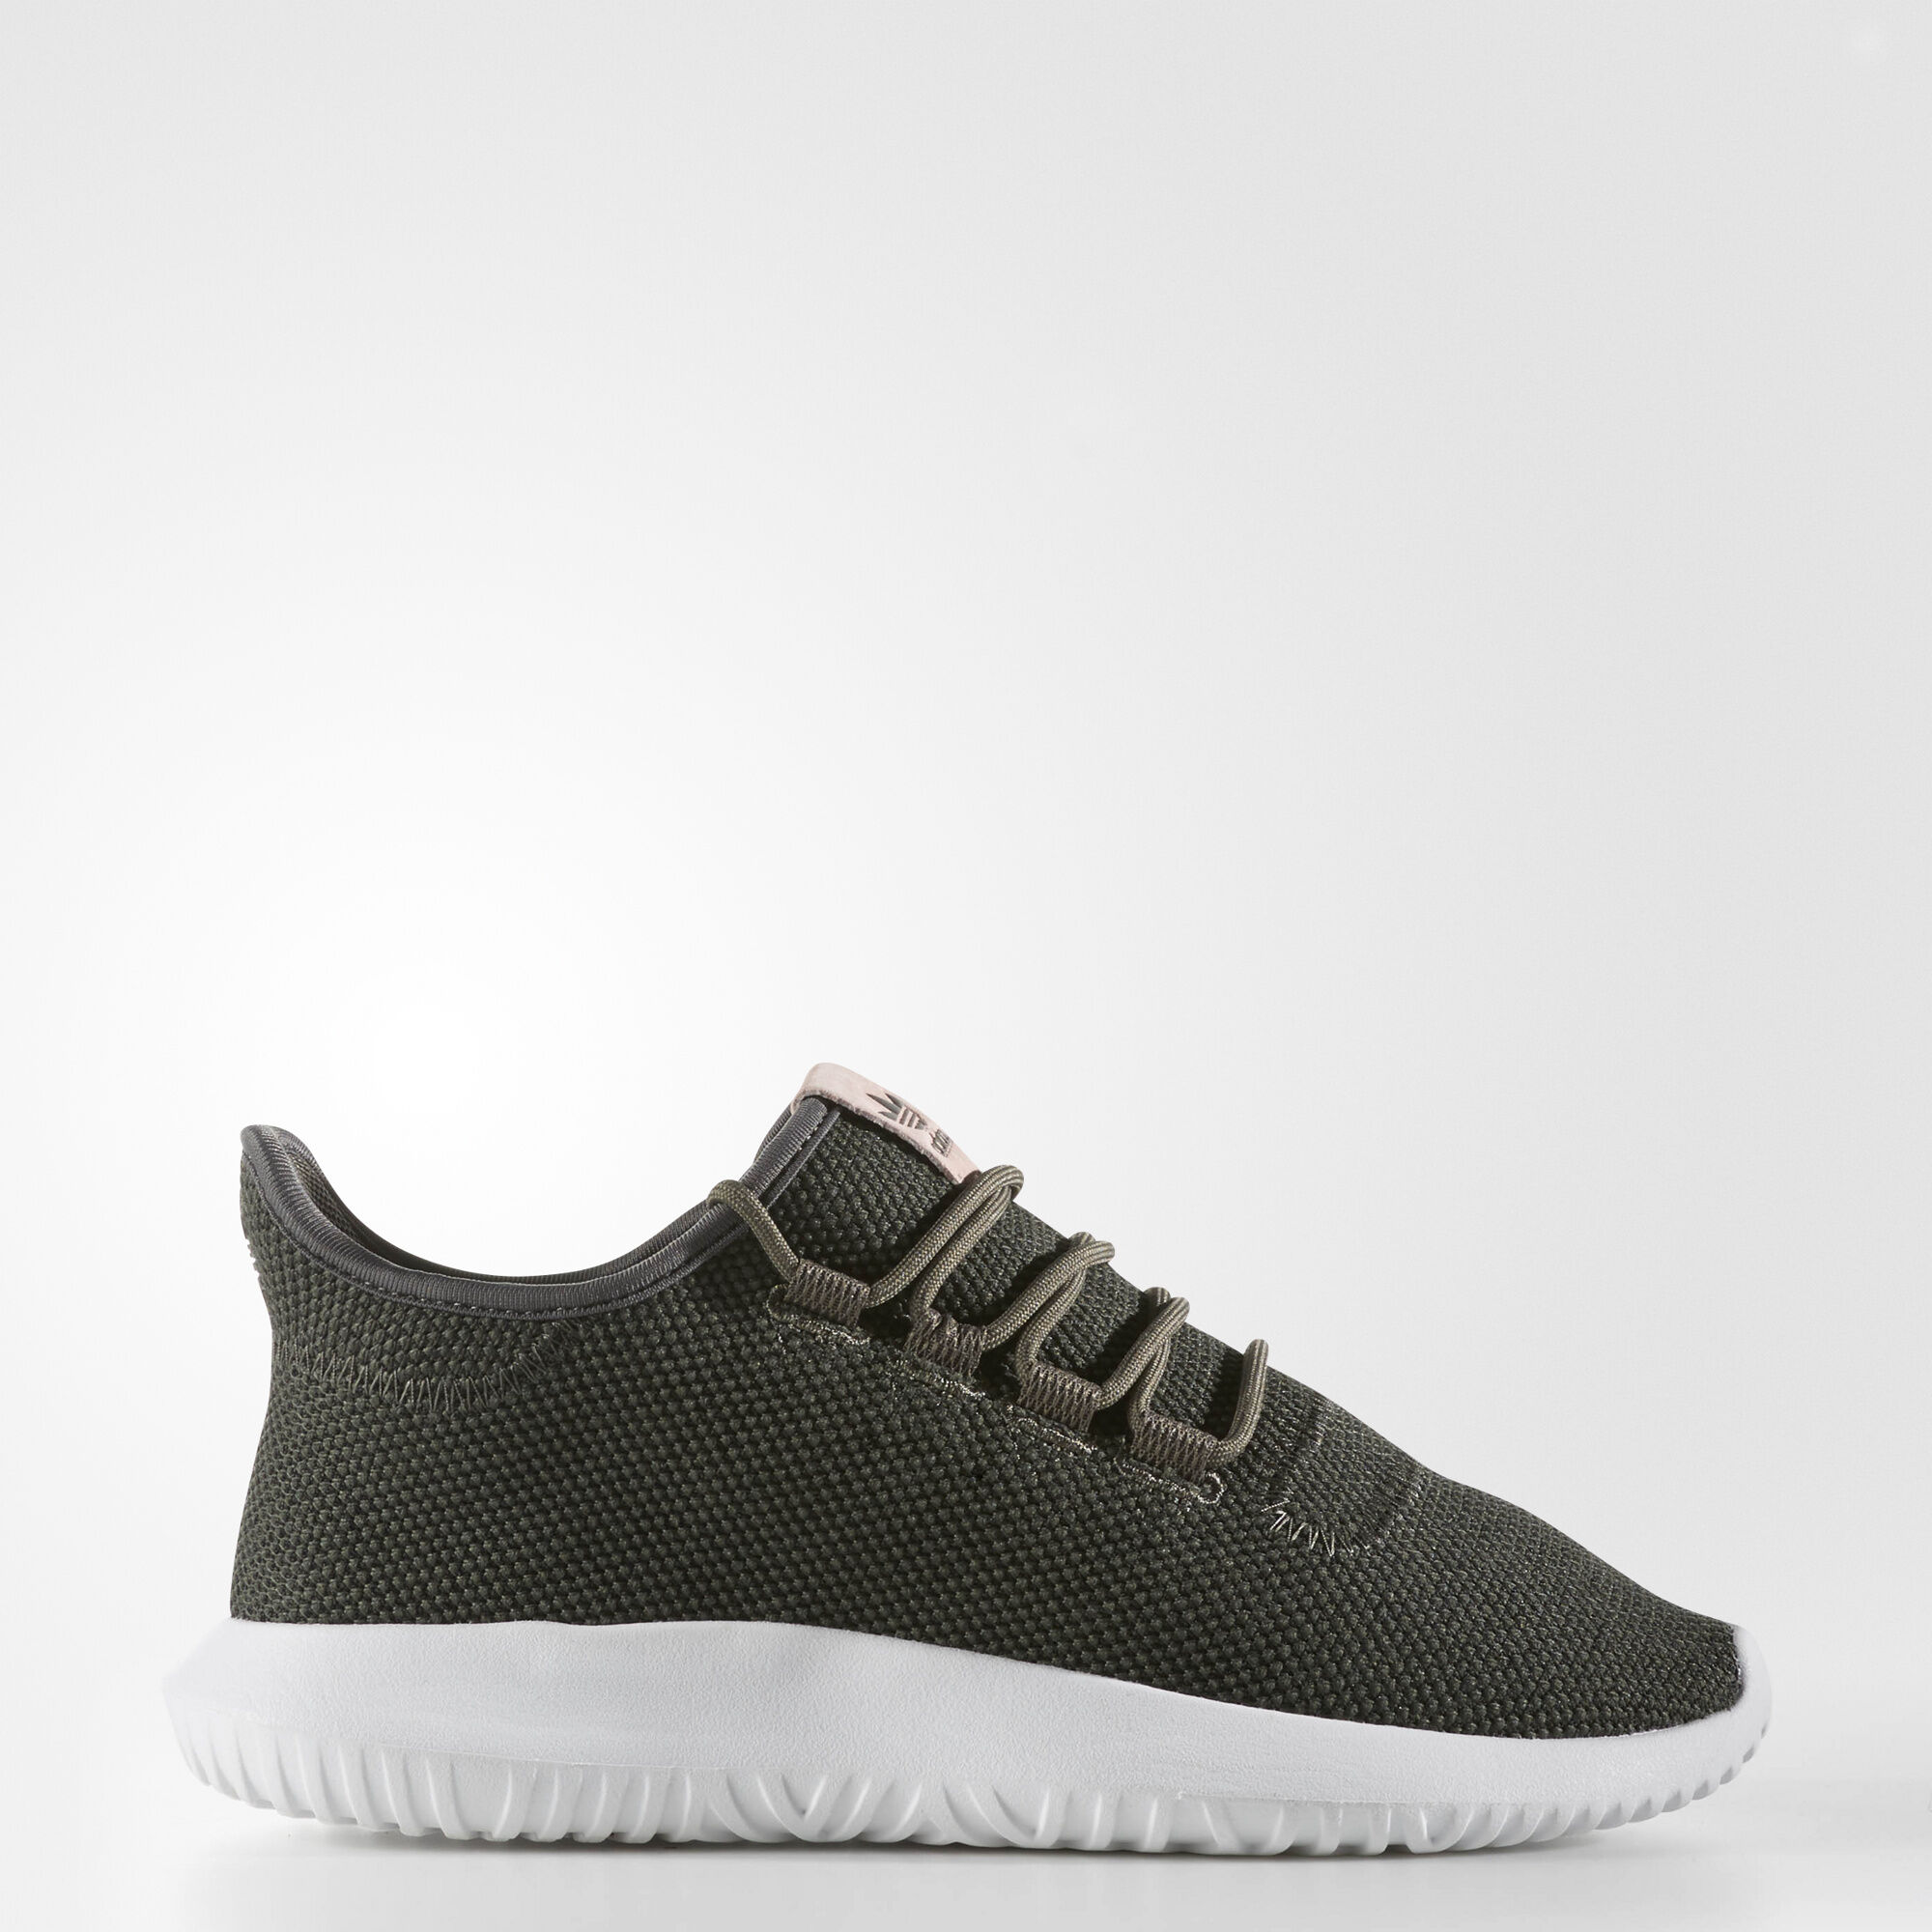 Adidas Tubular Shadow White Grey